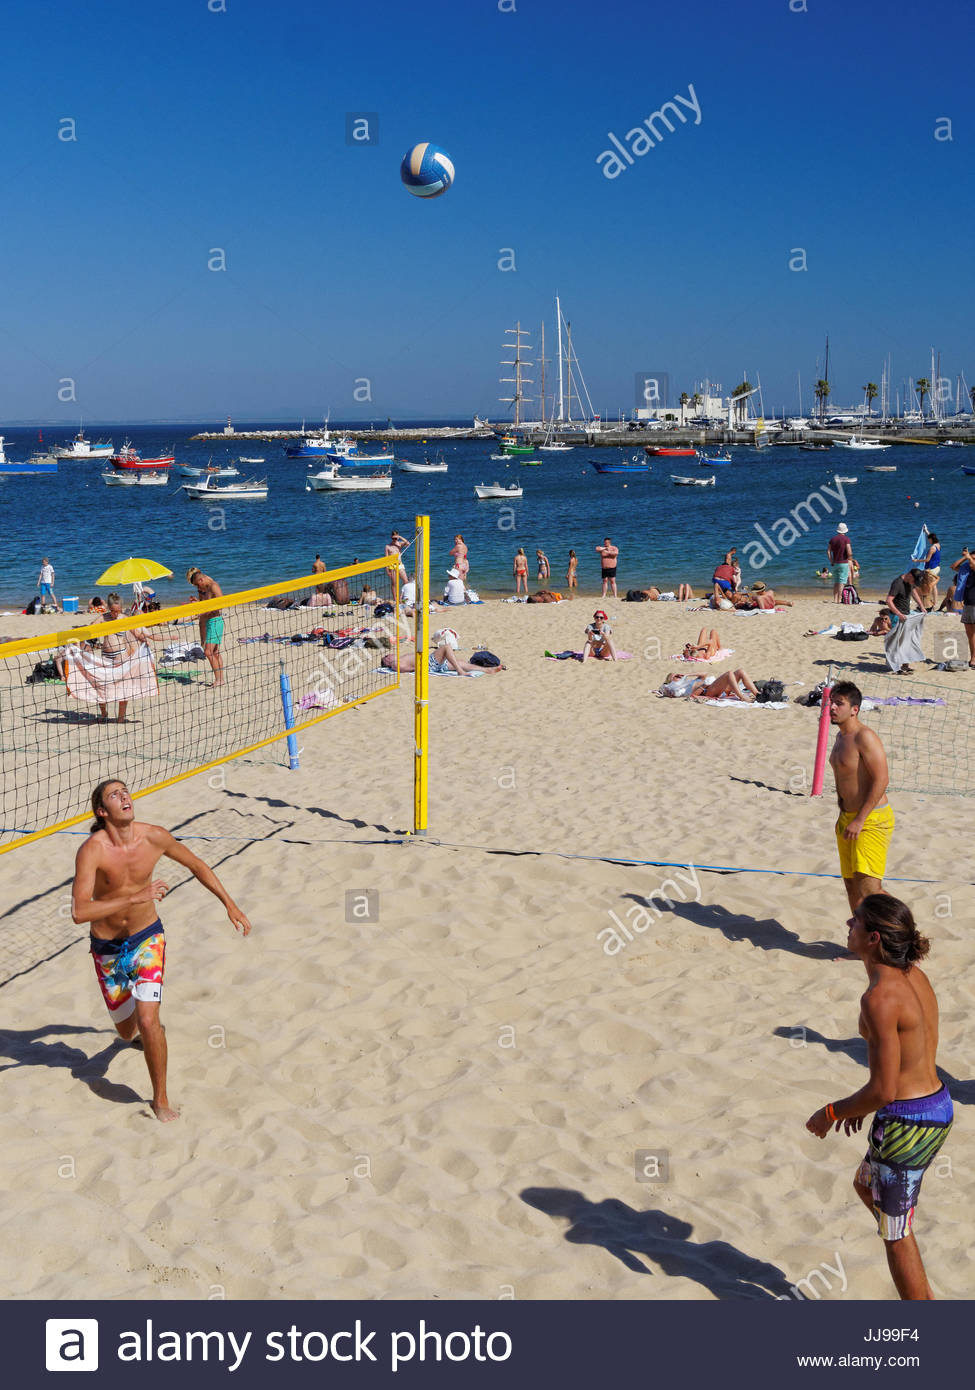 Three young men playing beach volley ball, Cascais, Portugal - Stock Image